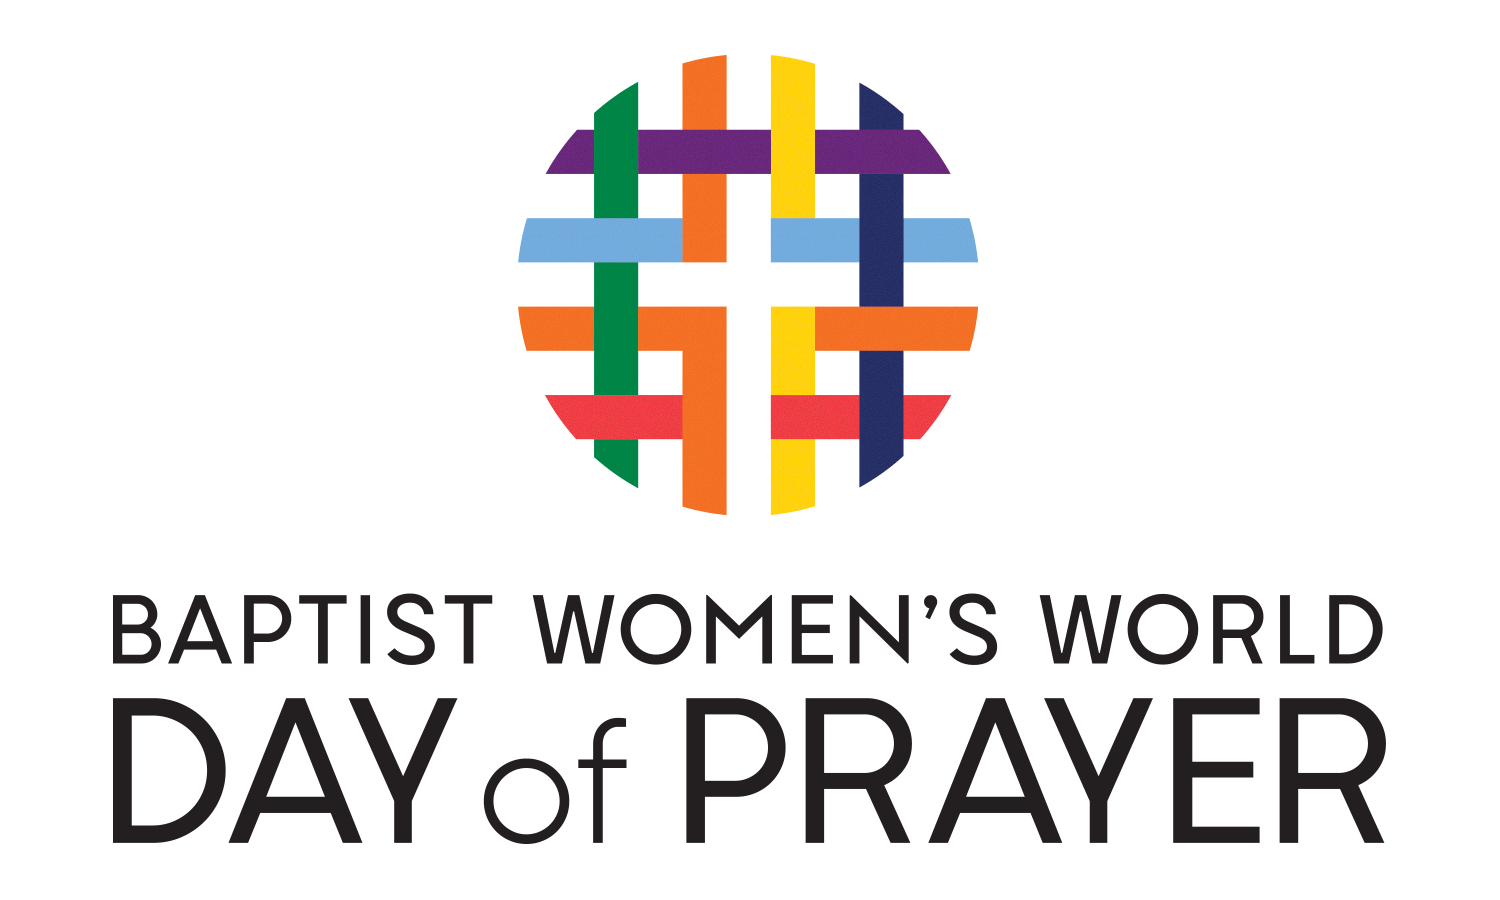 bwna_day_of_prayer_logo